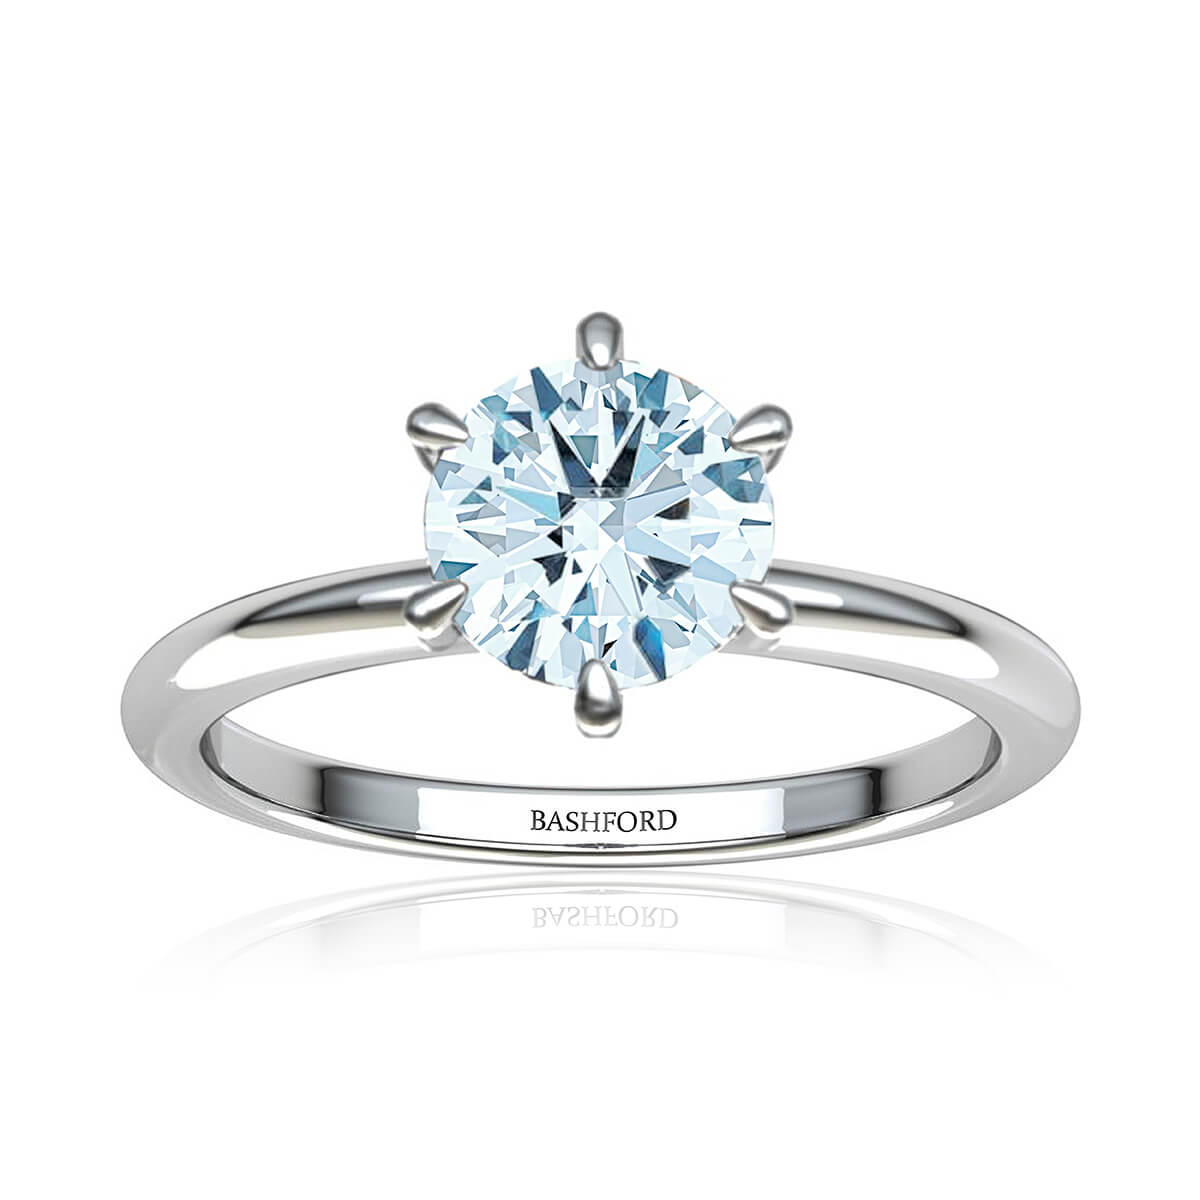 Serendipity Diamond Ring  (with VS2, G,  3/4 Carat Round Diamond)